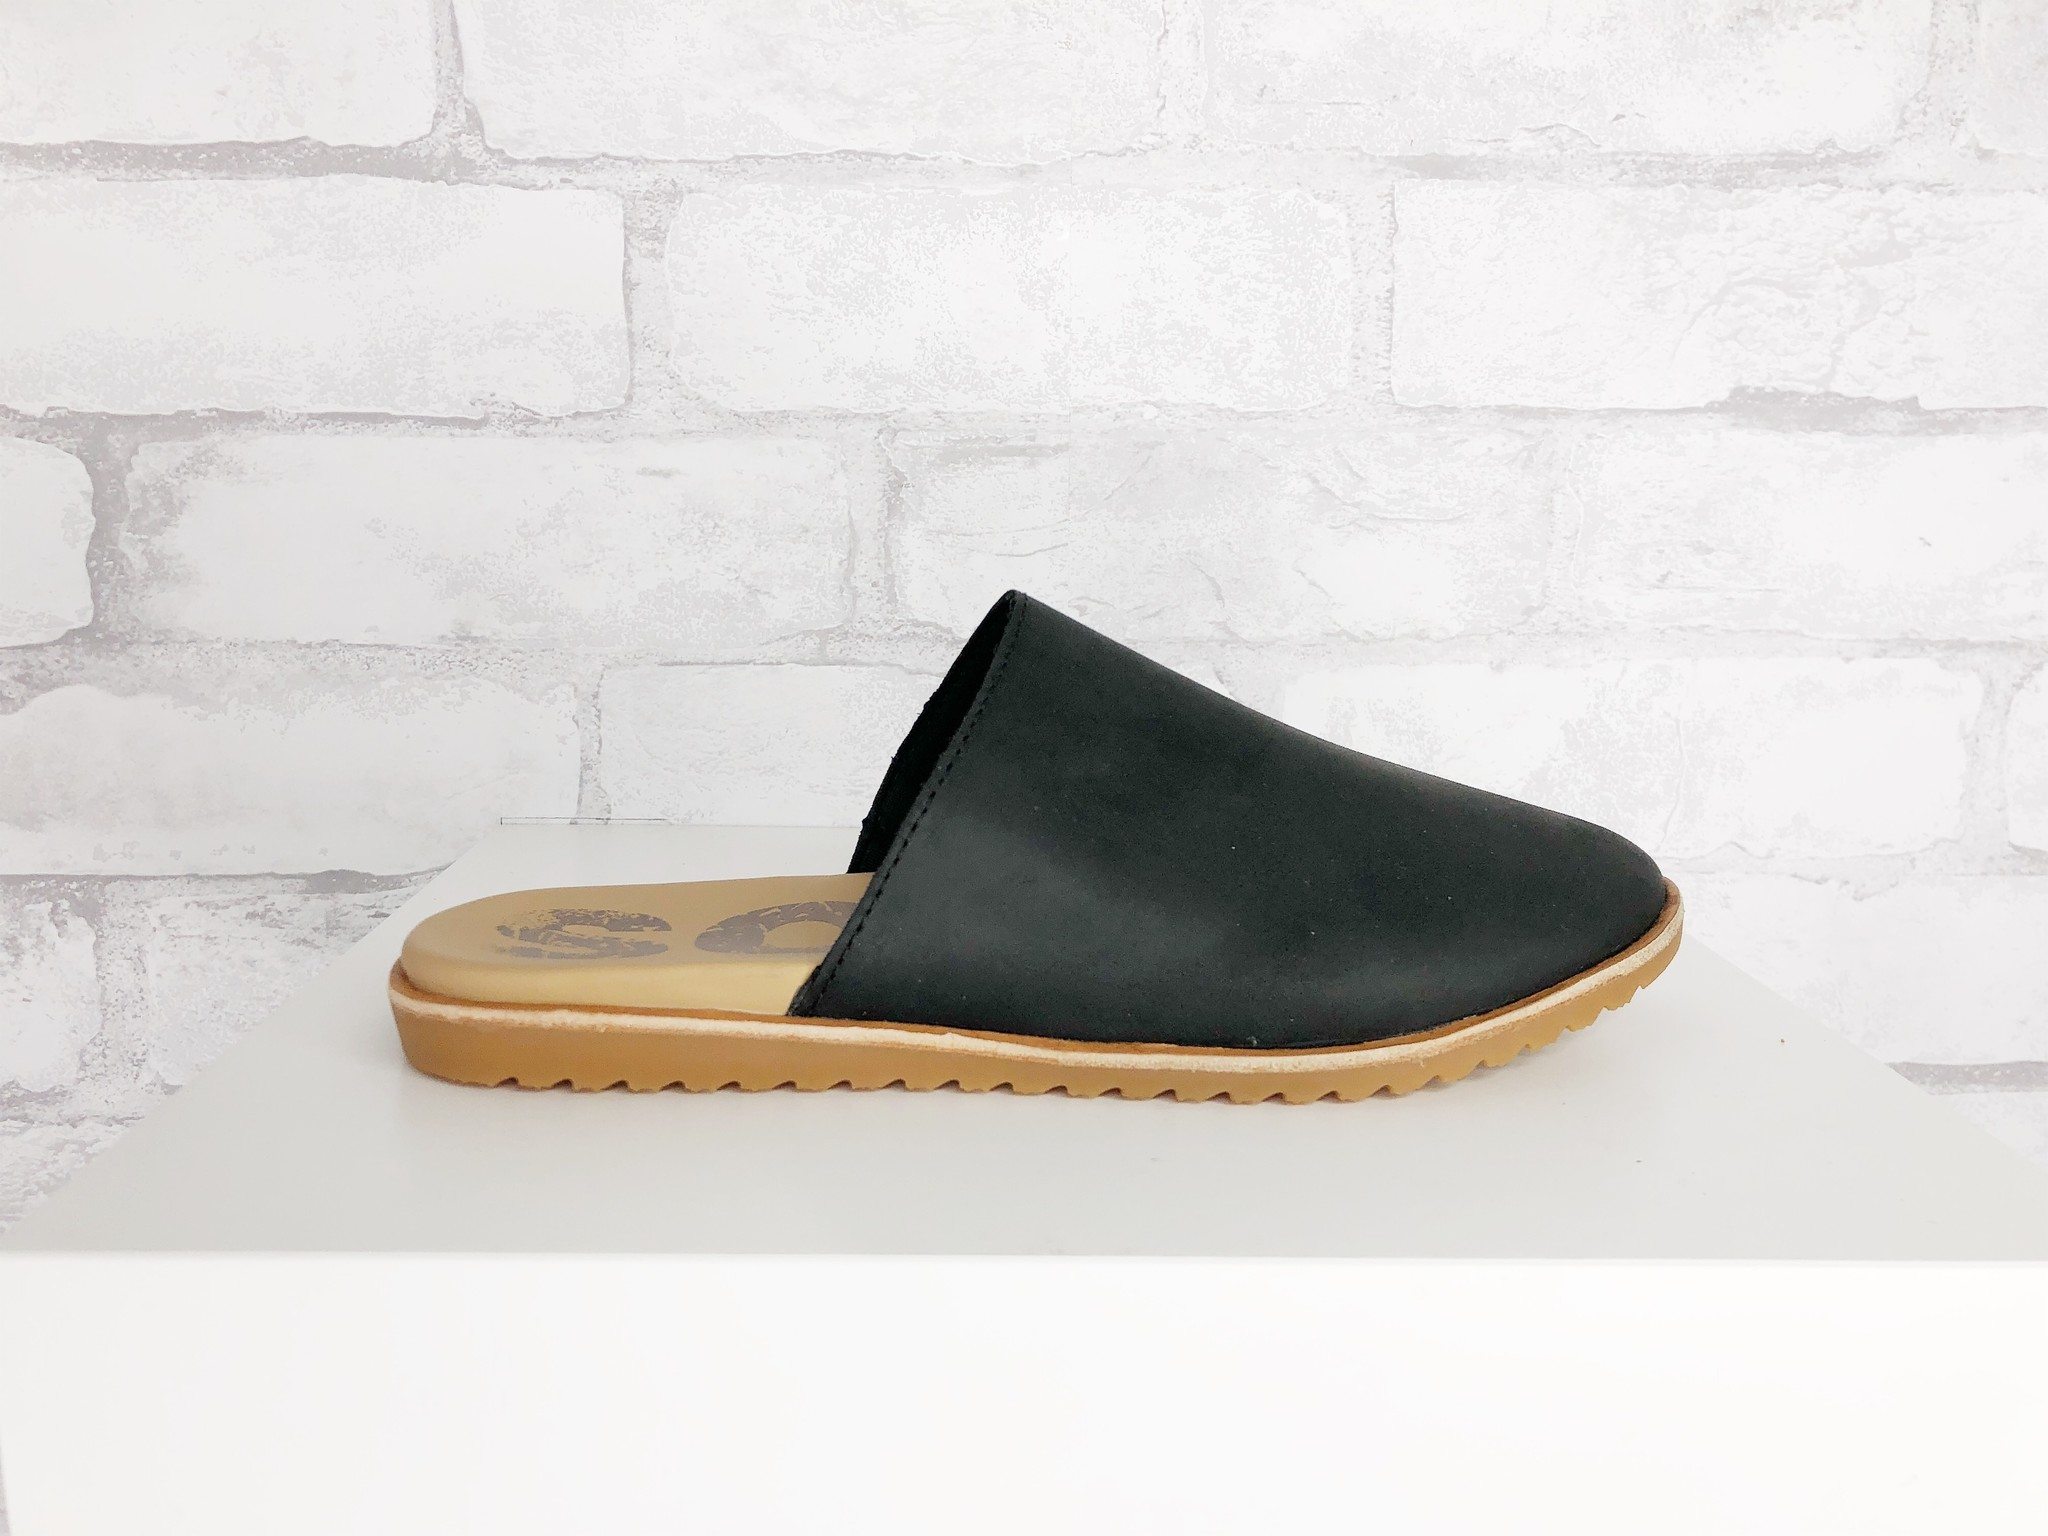 Sorel Footwear Ella Mule Black